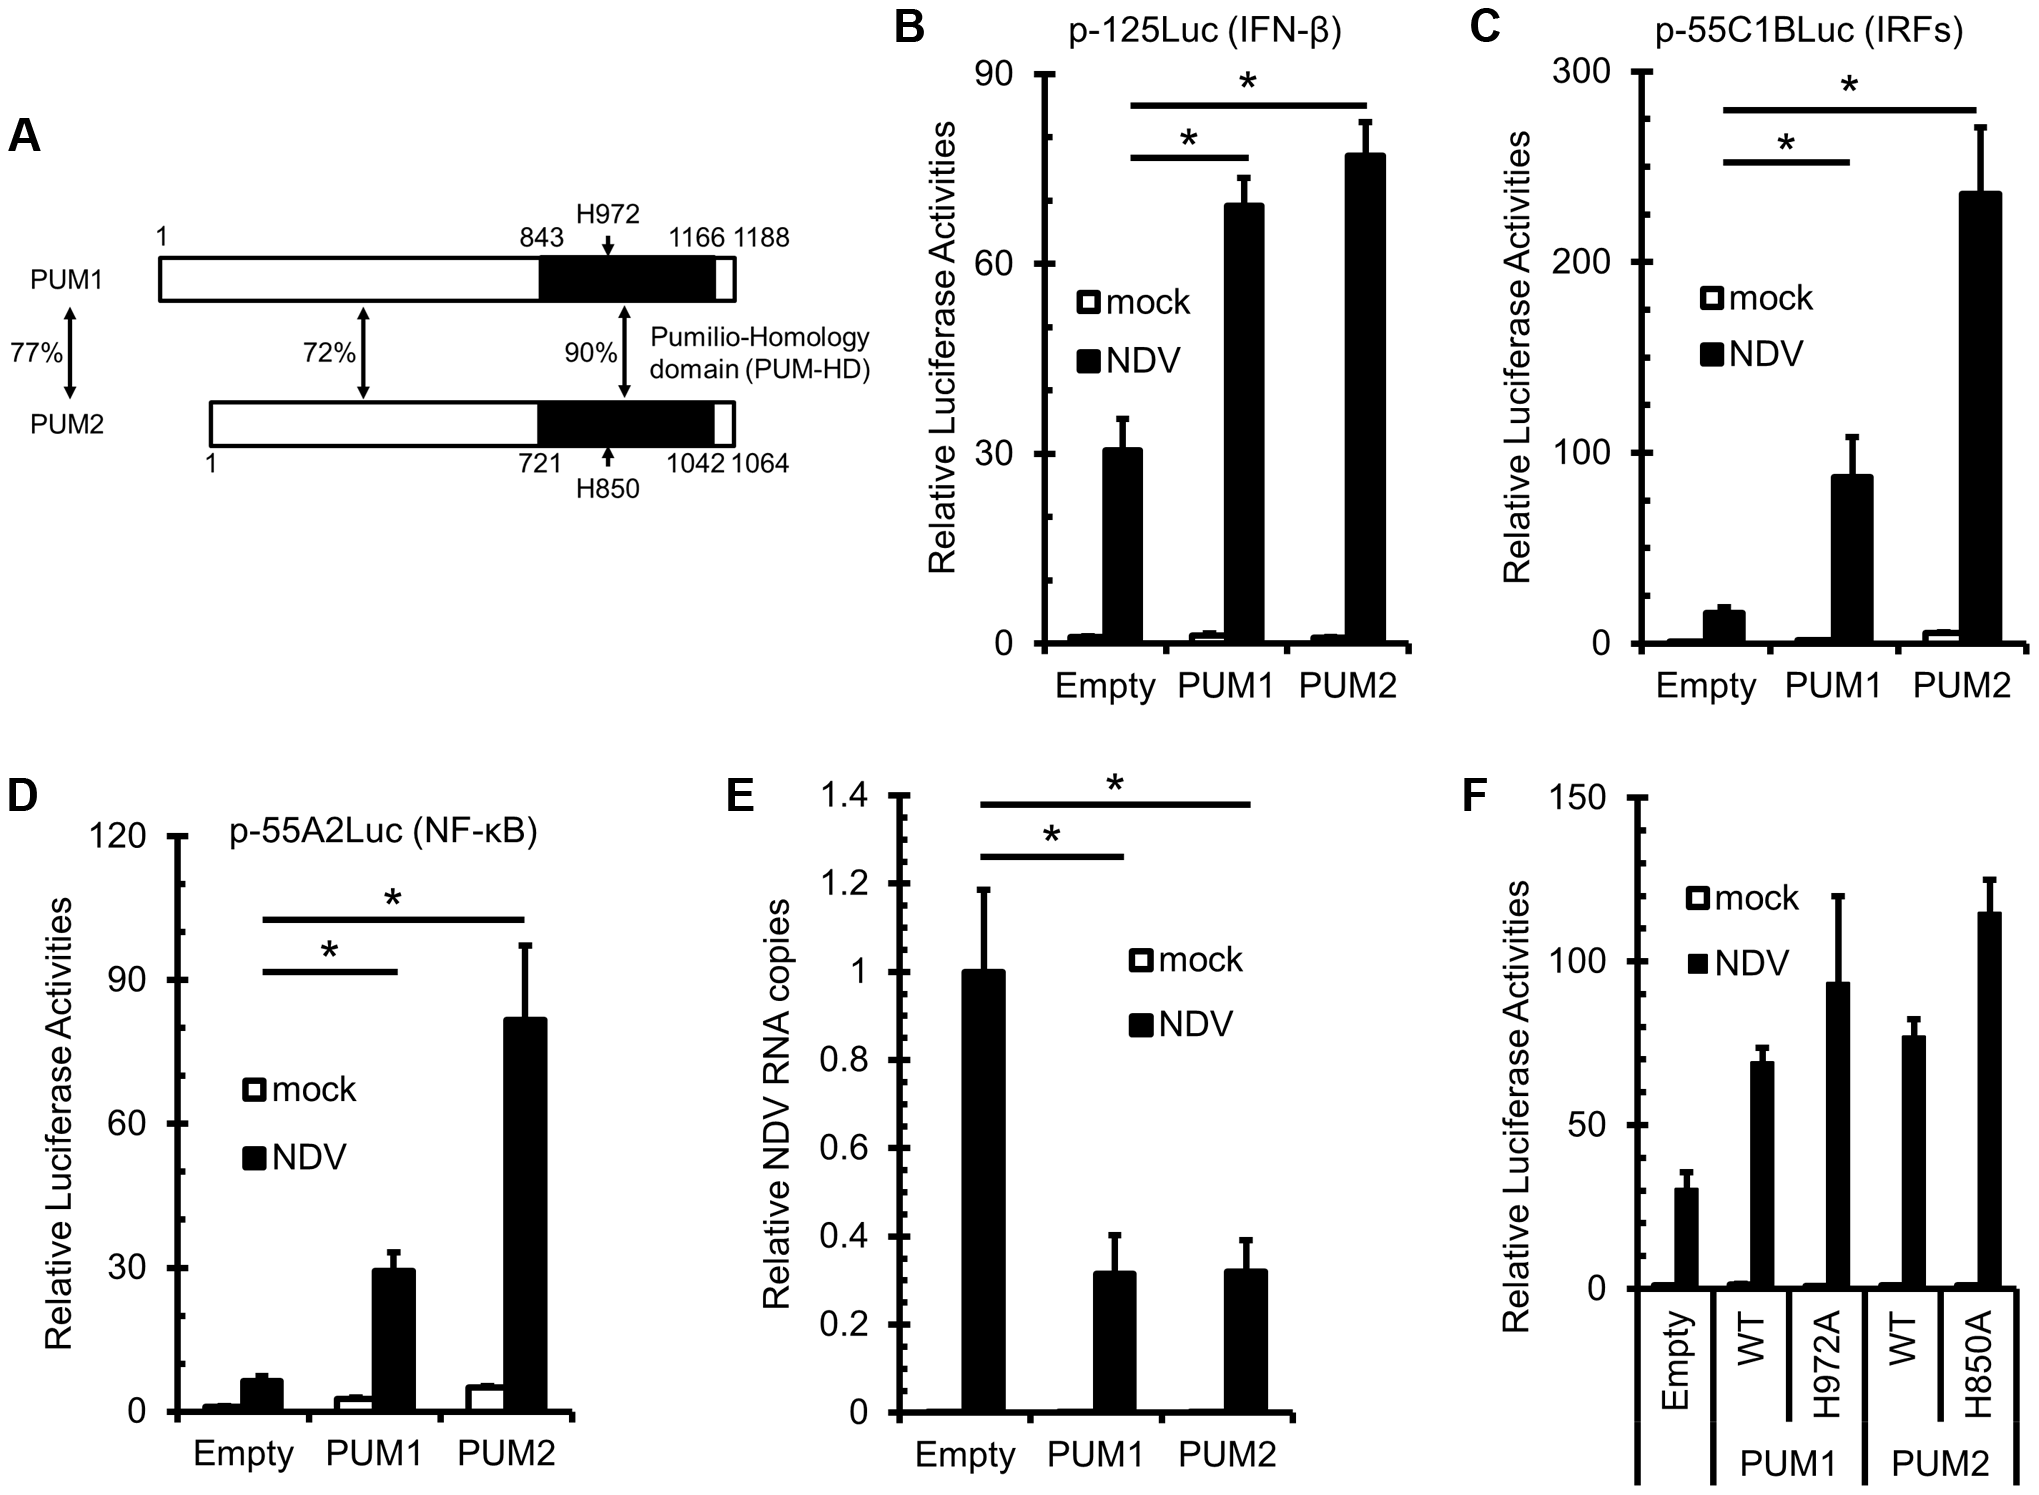 Overexpression of PUM1 and PUM2 results in enhanced NDV-induced <i>IFNB</i> promoter activity.